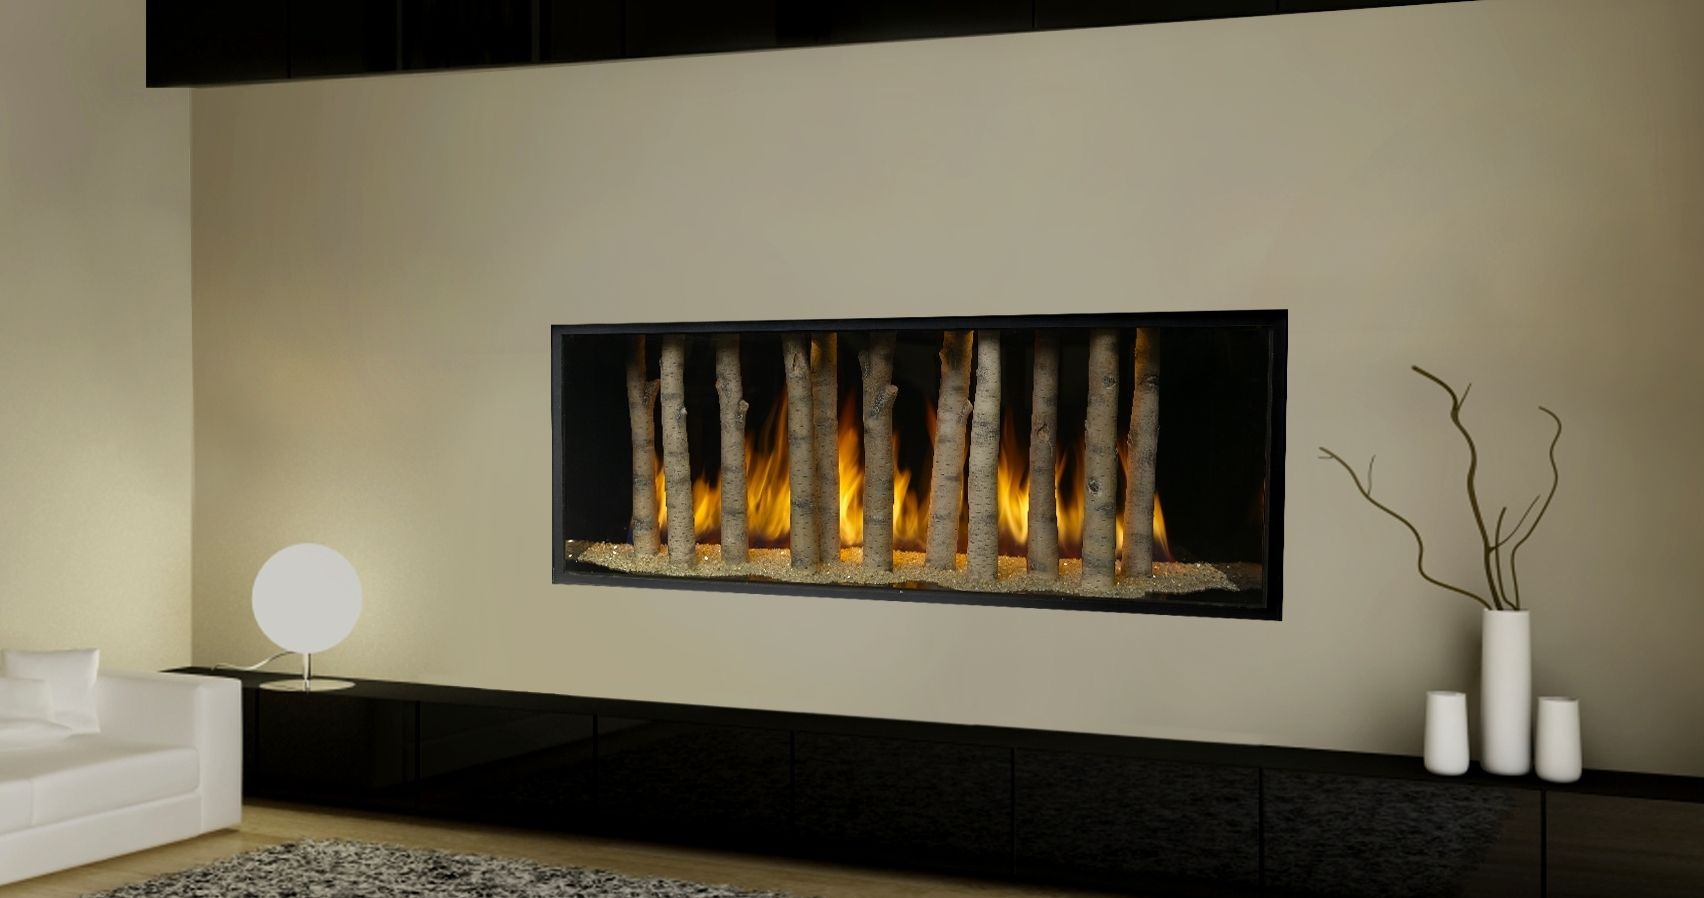 Gas Fireplace Design Ideas living room decorating ideas on a budget gas fireplace with slate design ideas pictures 1000 Images About Contemporary Fireplaces Gas On Pinterest Gas Fireplaces Contemporary Fireplaces And Contemporary Gas Fireplace